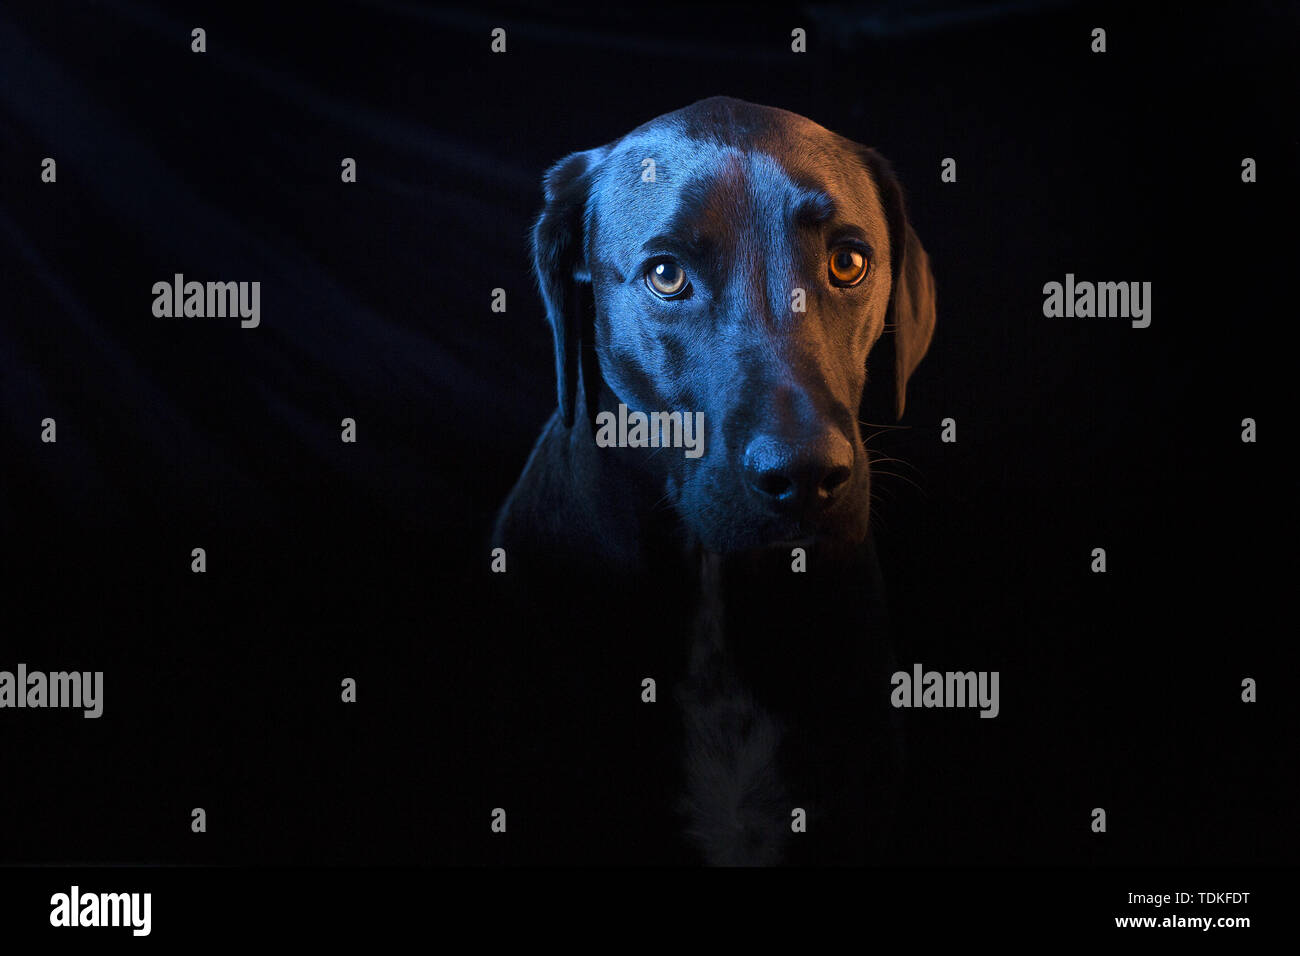 San Diego, California, USA. 16th June, 2019. A mixed labrador retriever and weimaraner rescued dog poses for a portrait. Credit: KC Alfred/ZUMA Wire/Alamy Live News - Stock Image